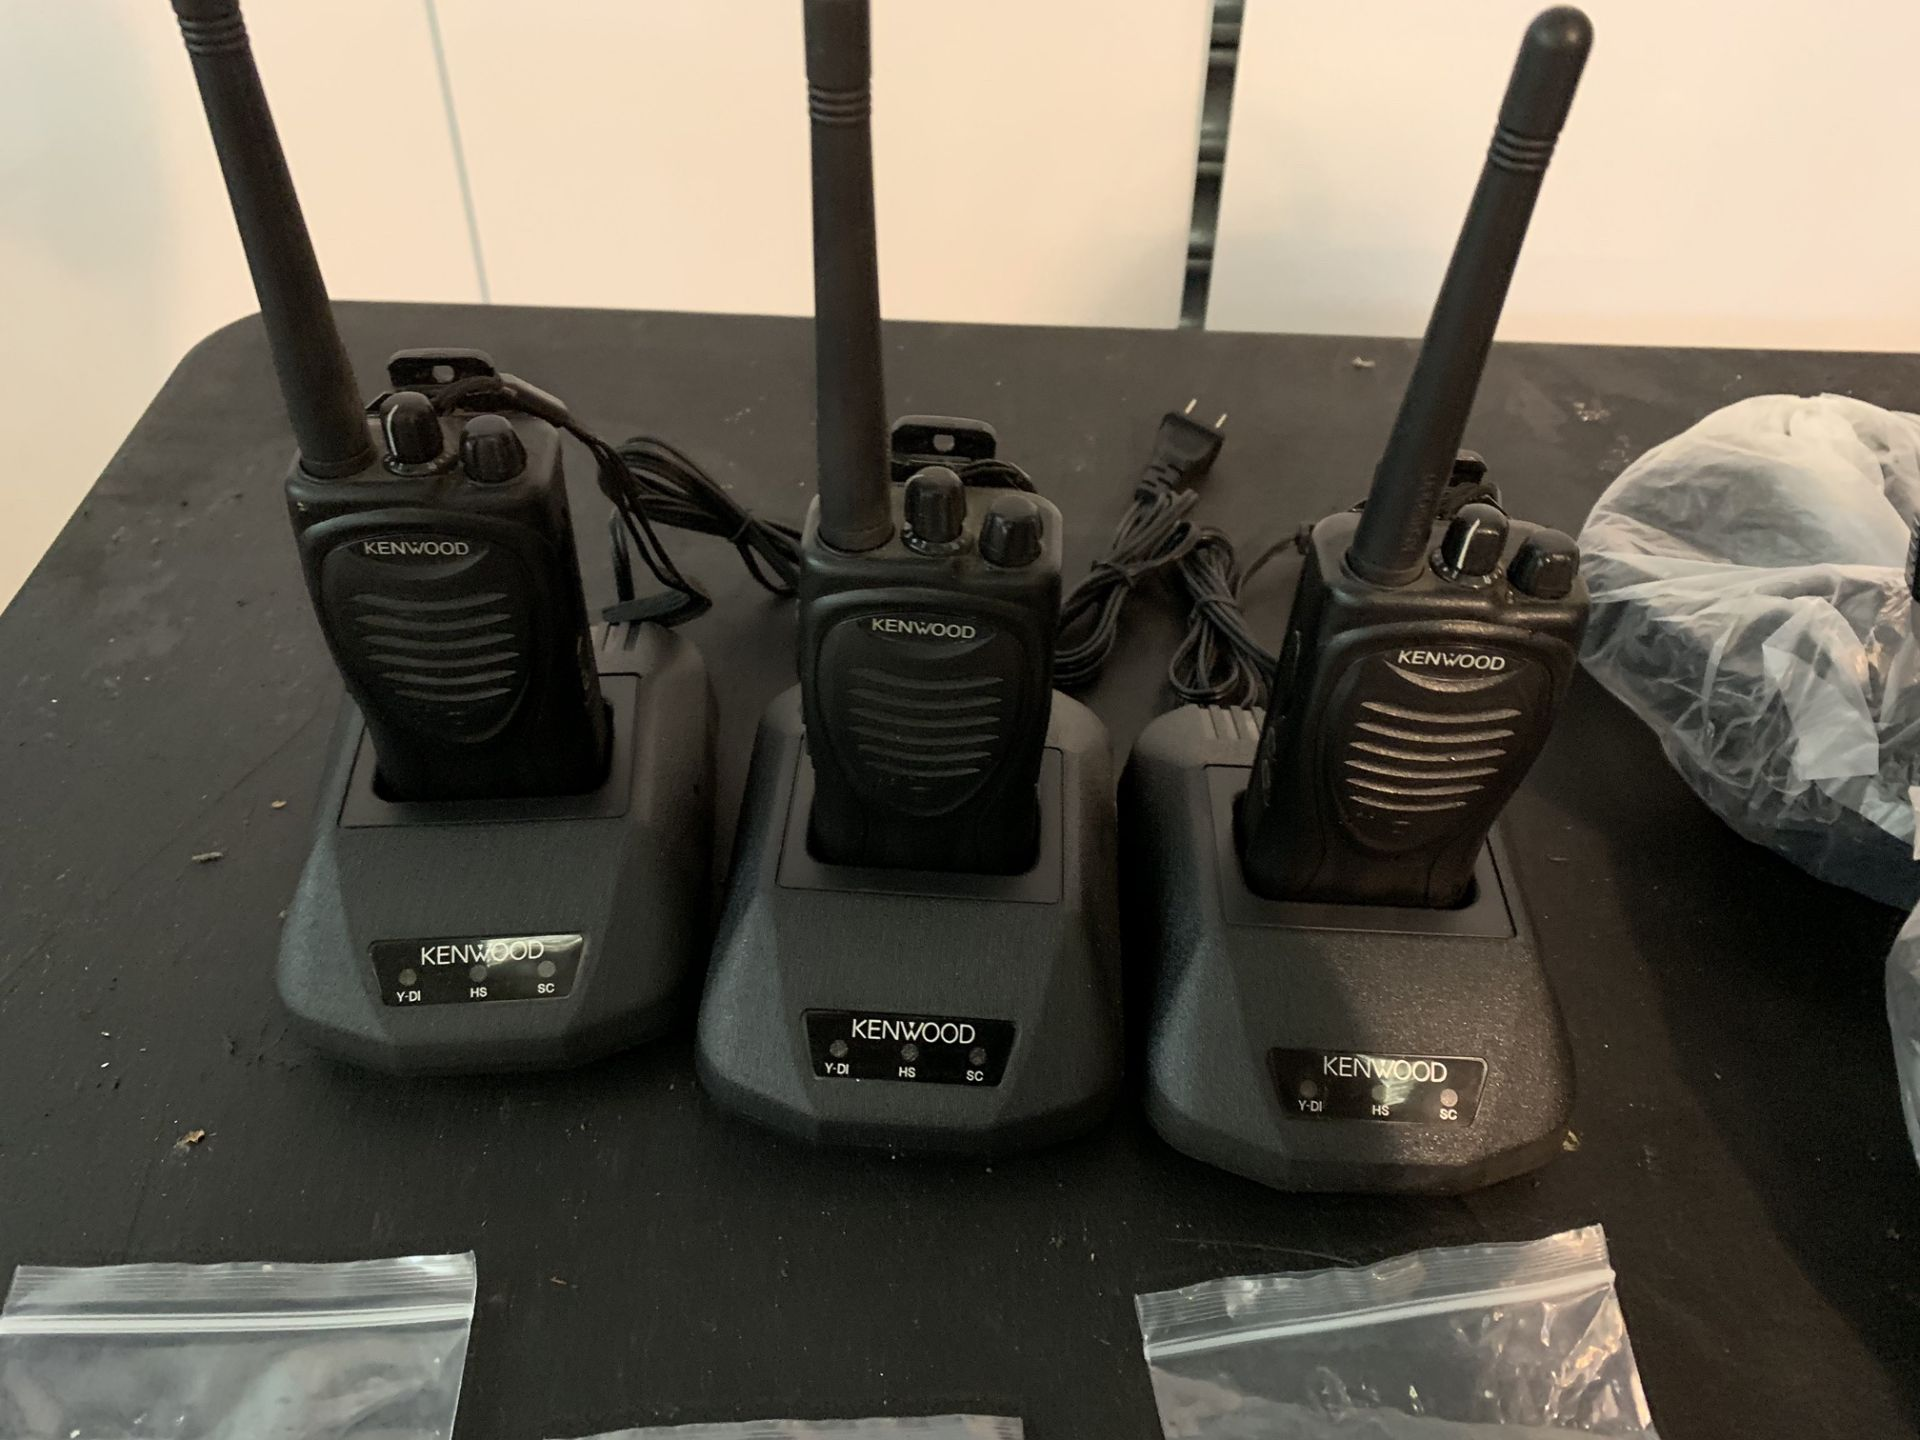 Lot 23 - 3 x KENWOOD RADIOS WITH 3 X EARPIECES & 3 X KANEN HEADPHONE